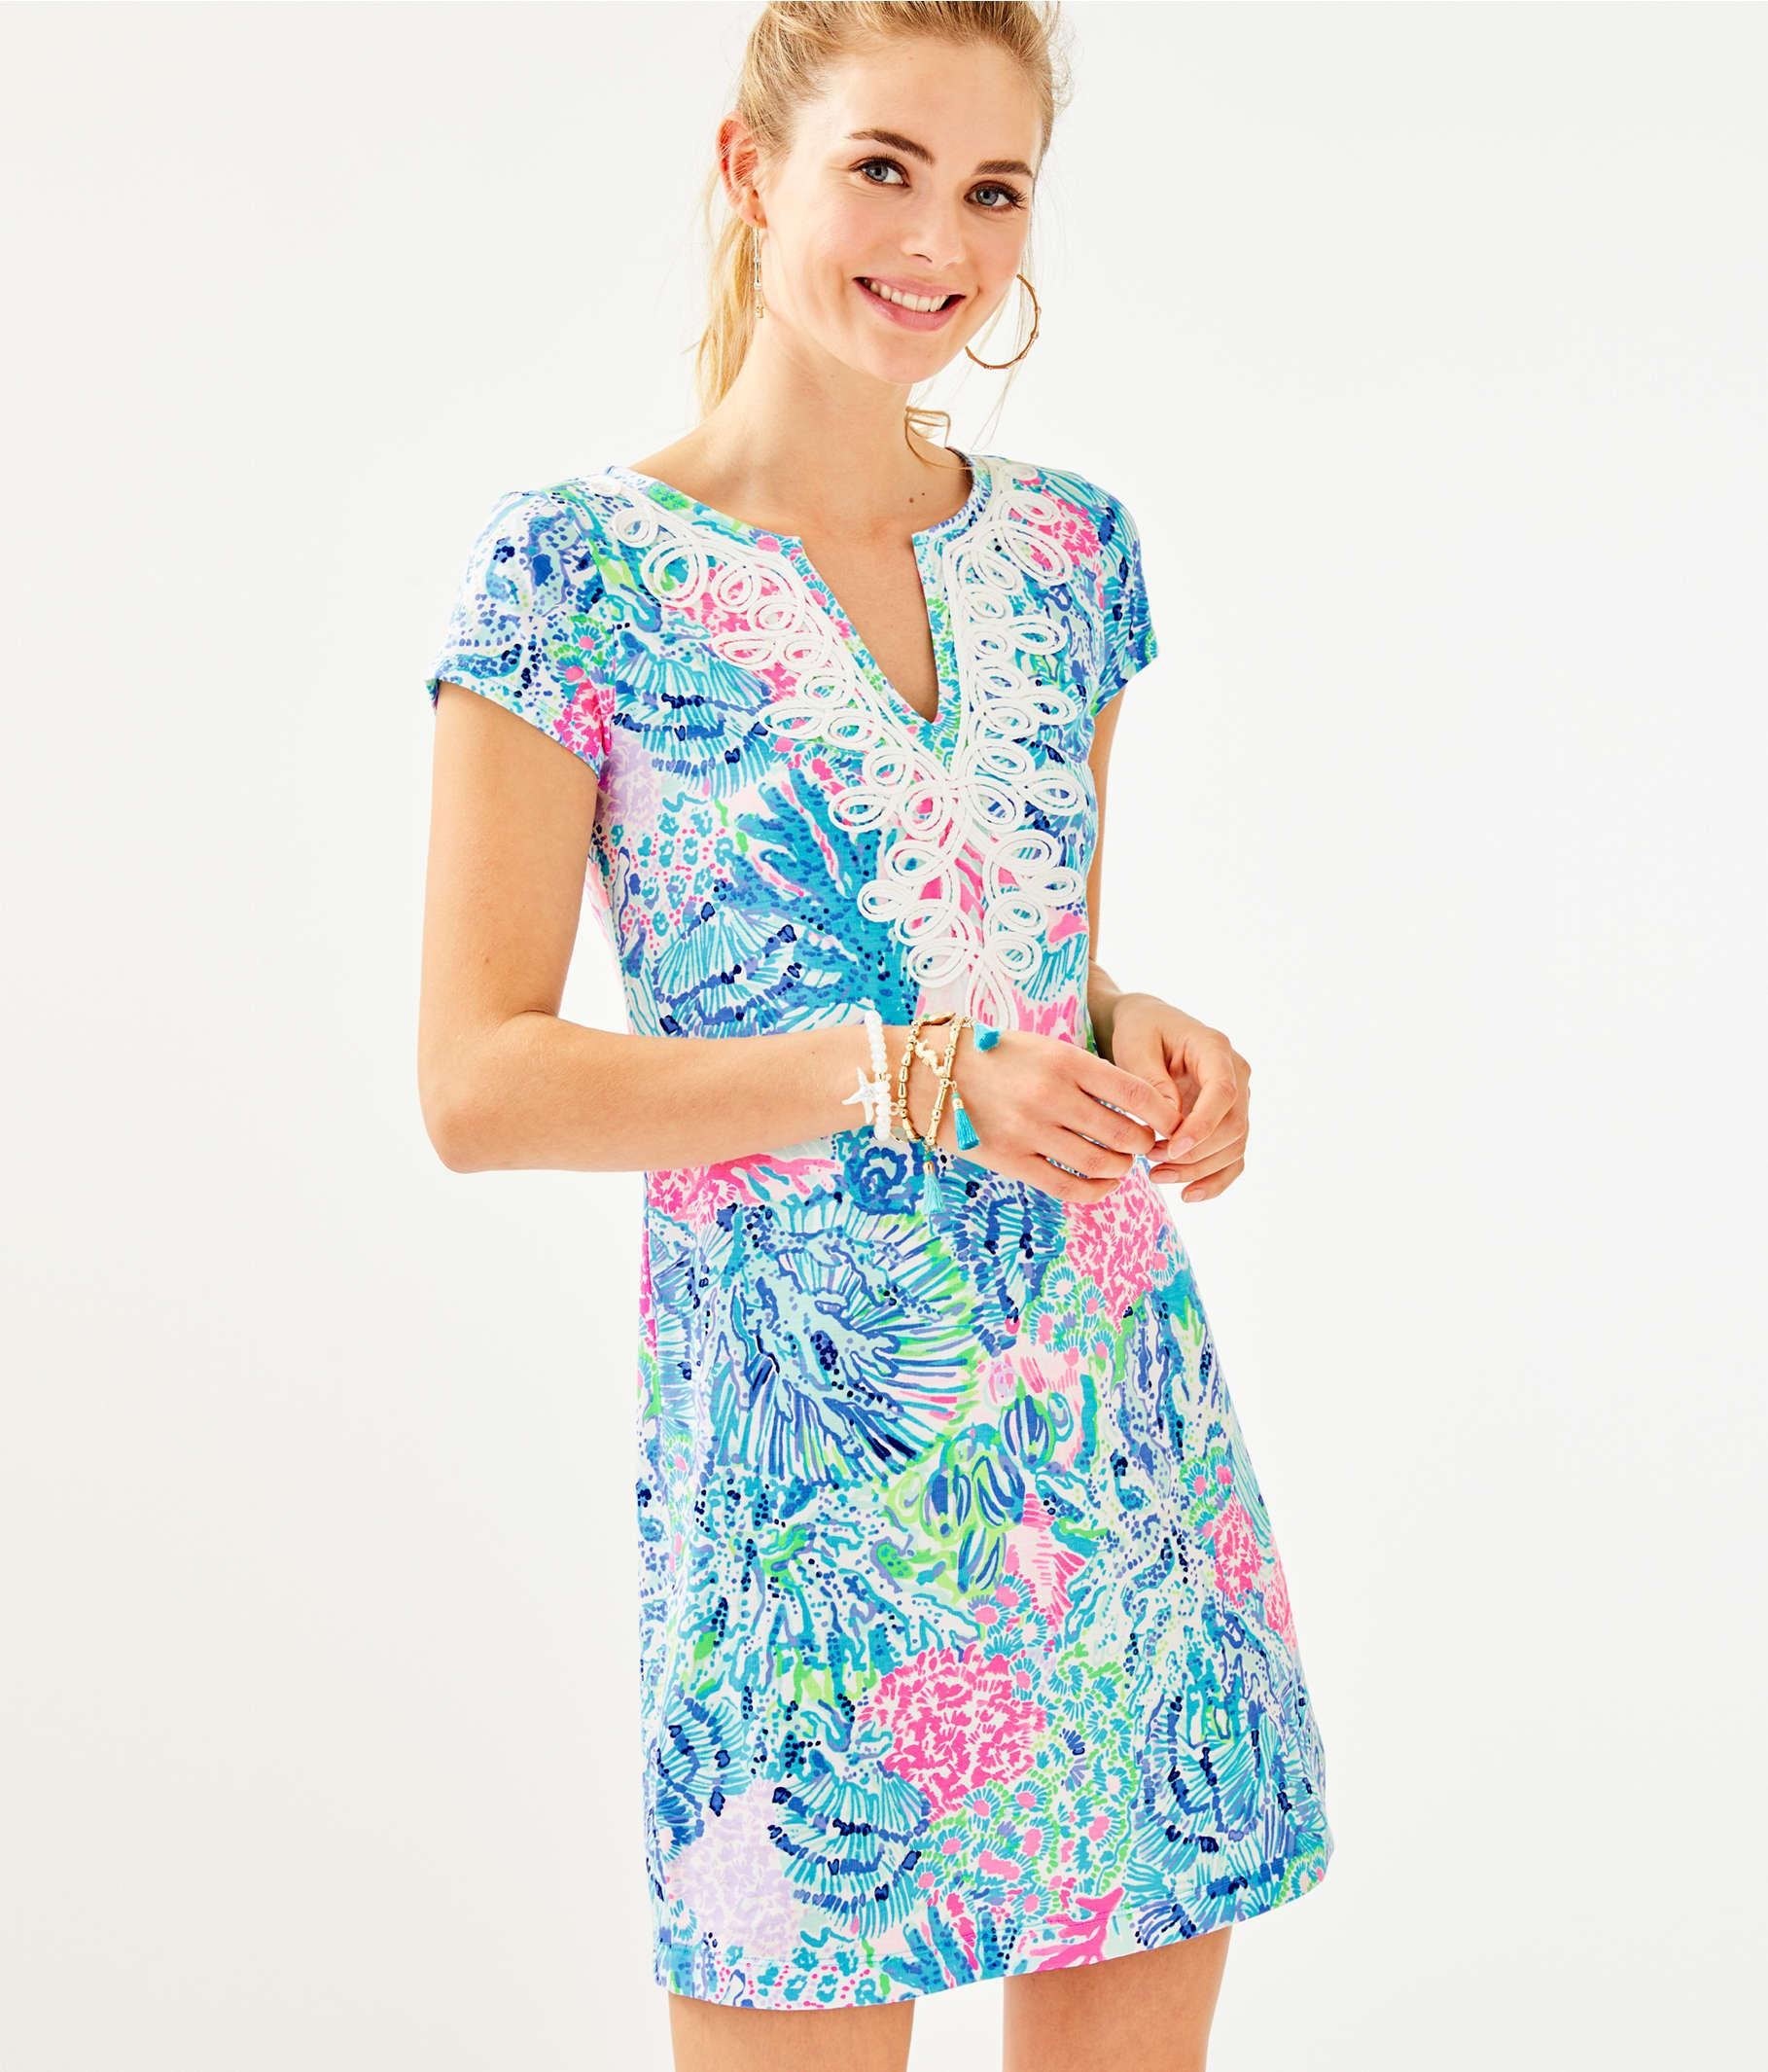 52f1825a8fa192 Lyst - Lilly Pulitzer Brewster Dress in Blue